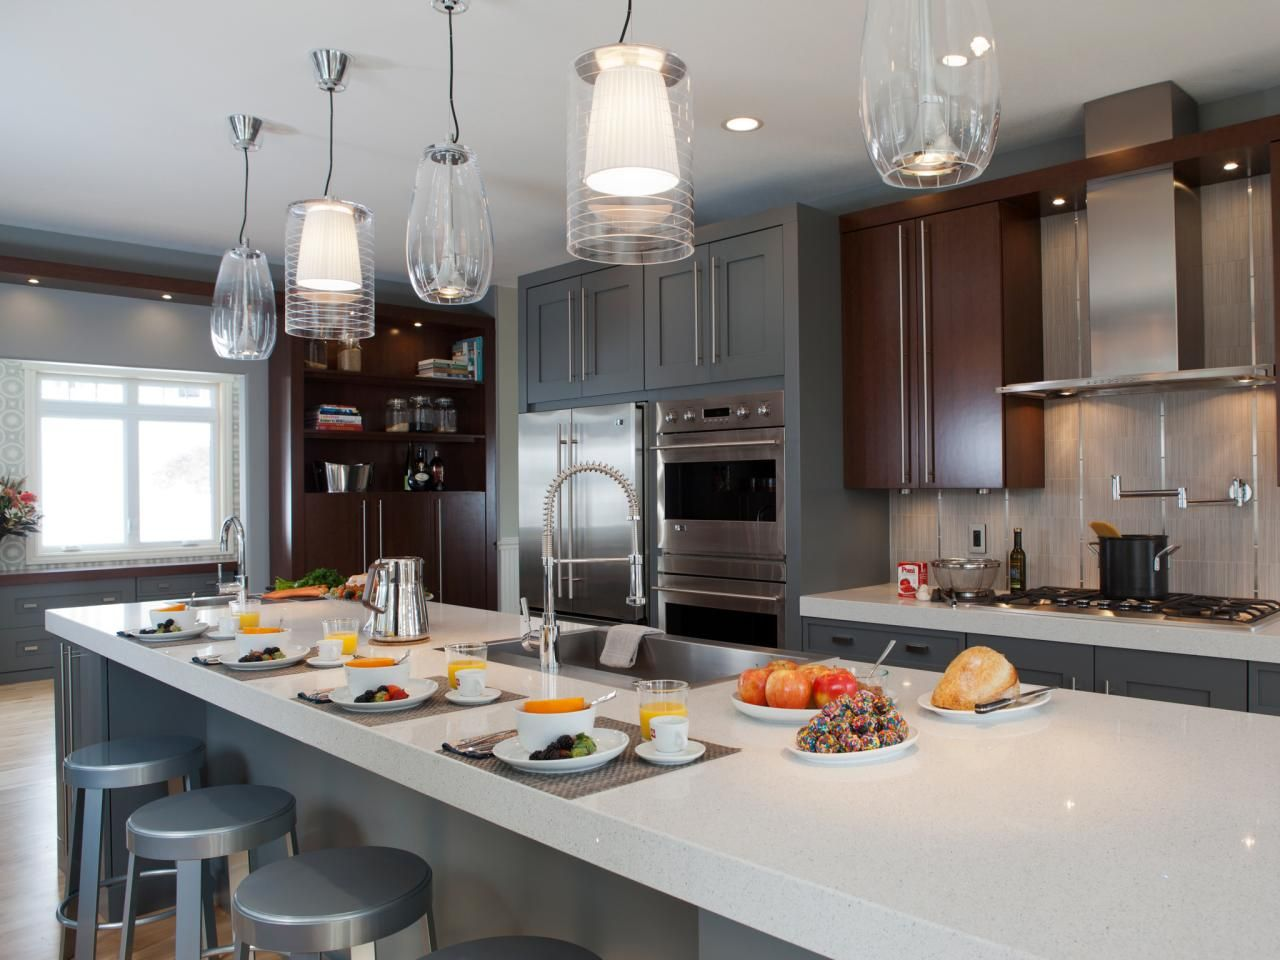 Gray Kitchens, Bathrooms and More | Hgtv, Gray kitchens and Kitchens